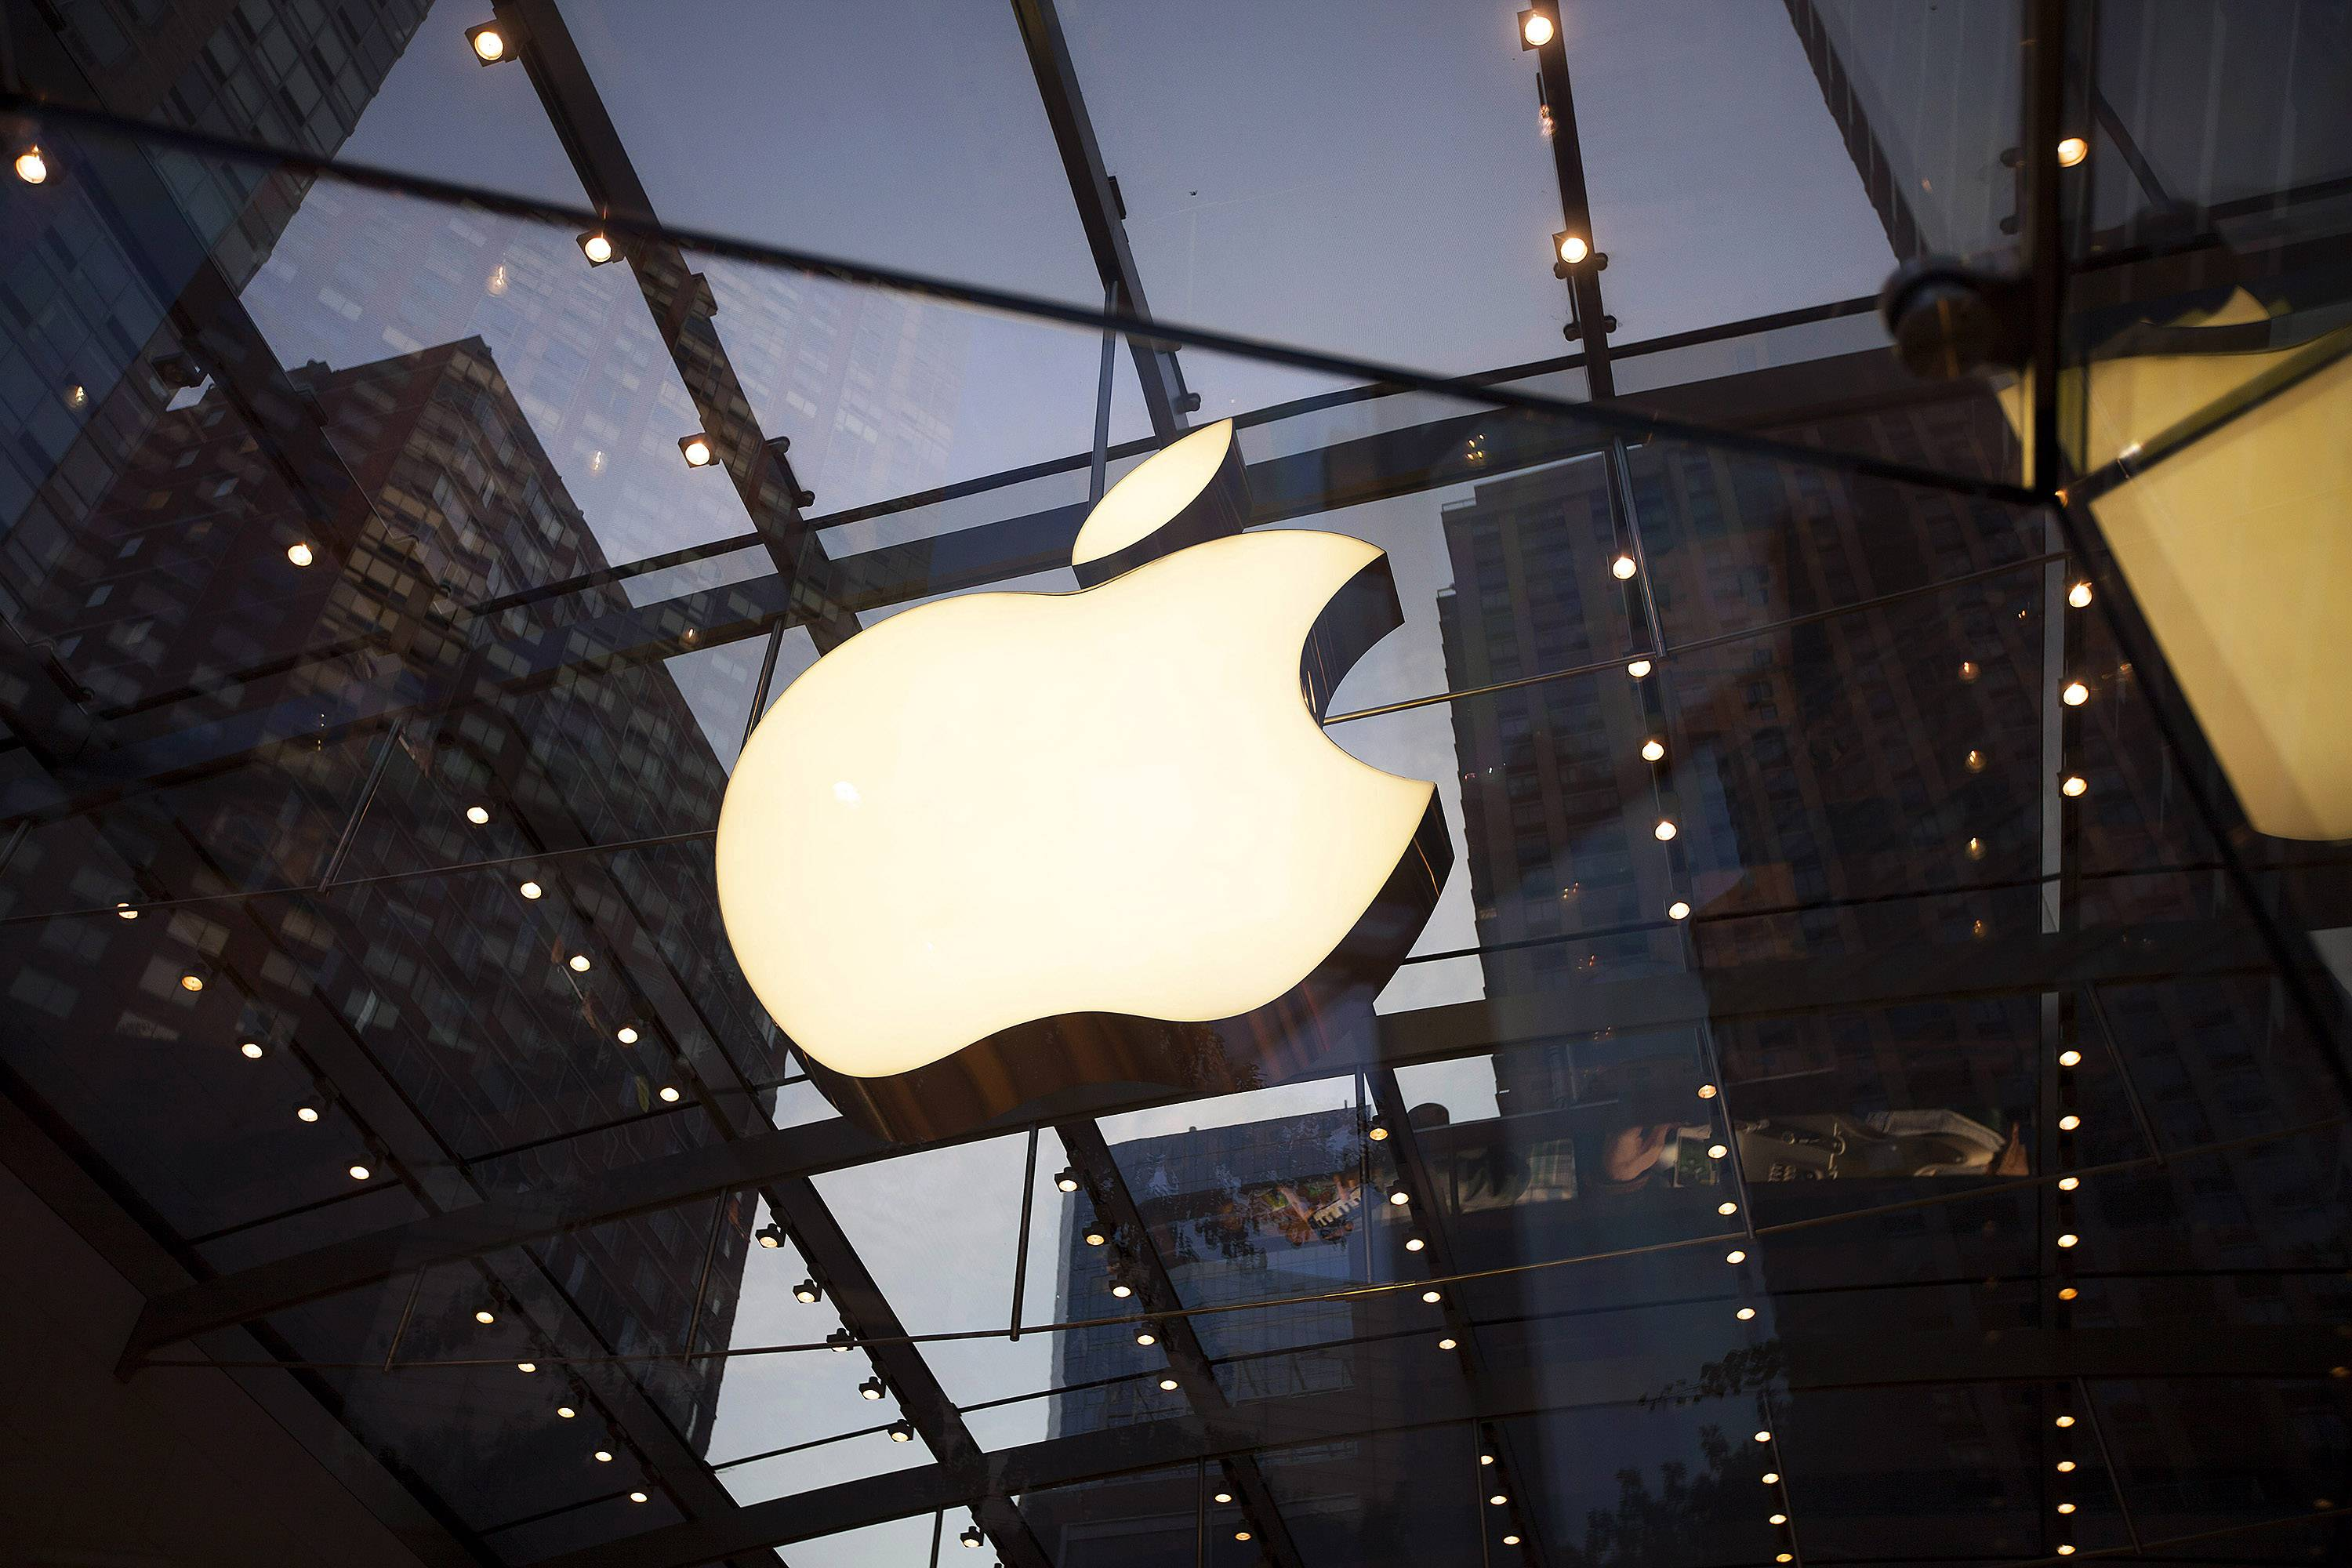 Apple said Wednesday it will spend $350 billion in development and create 20,000 U.S. jobs in the next five years.